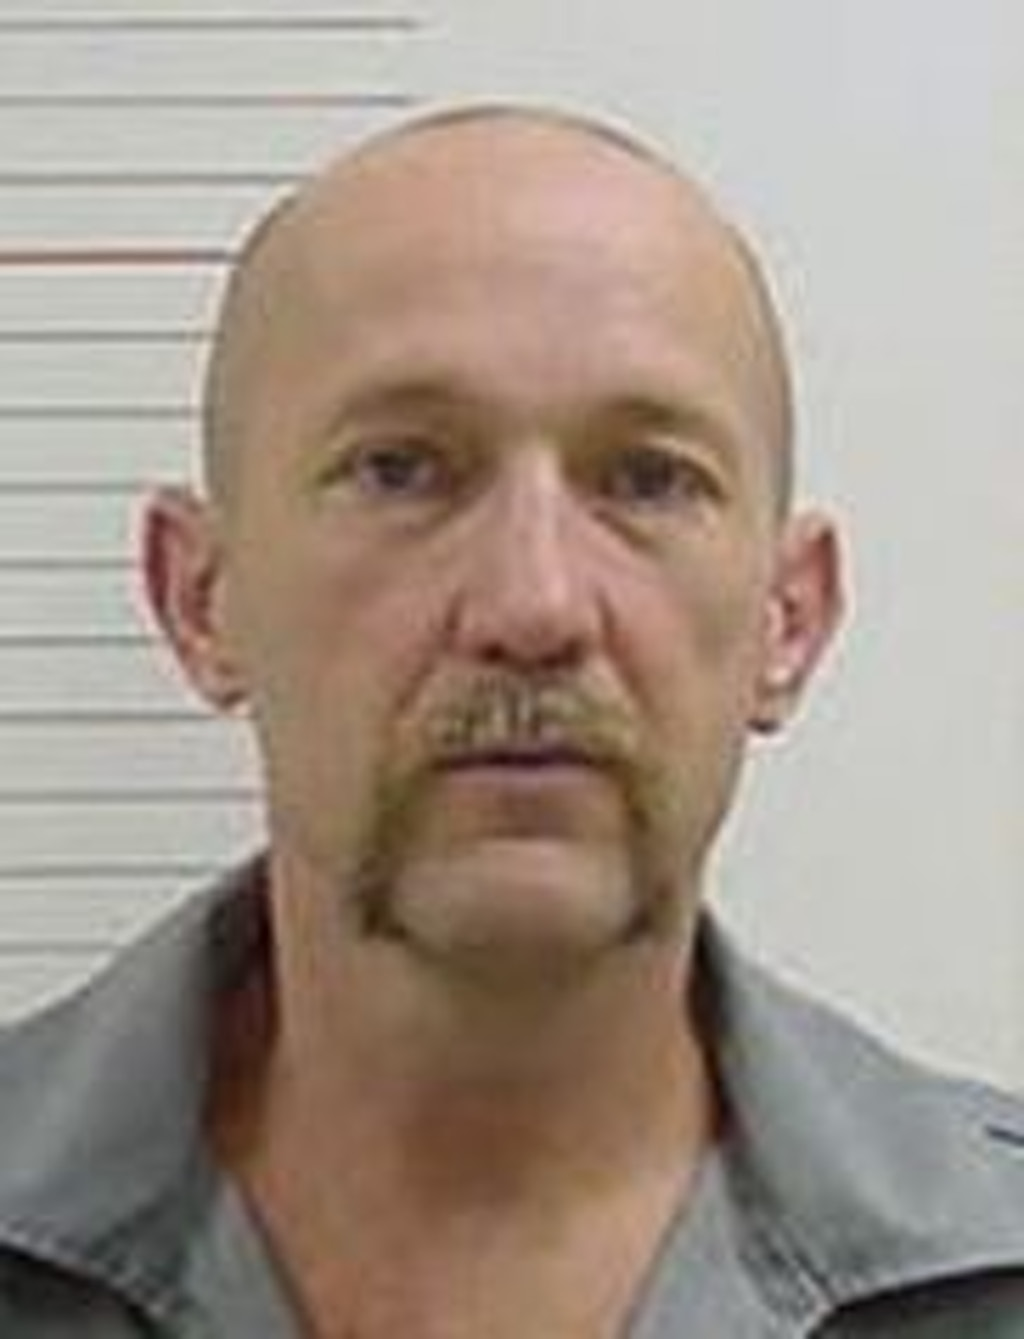 Missouri Supreme Court Denies Stay of May 19 Execution for Brain-Damaged Man Tried Five Times for the Same Murder